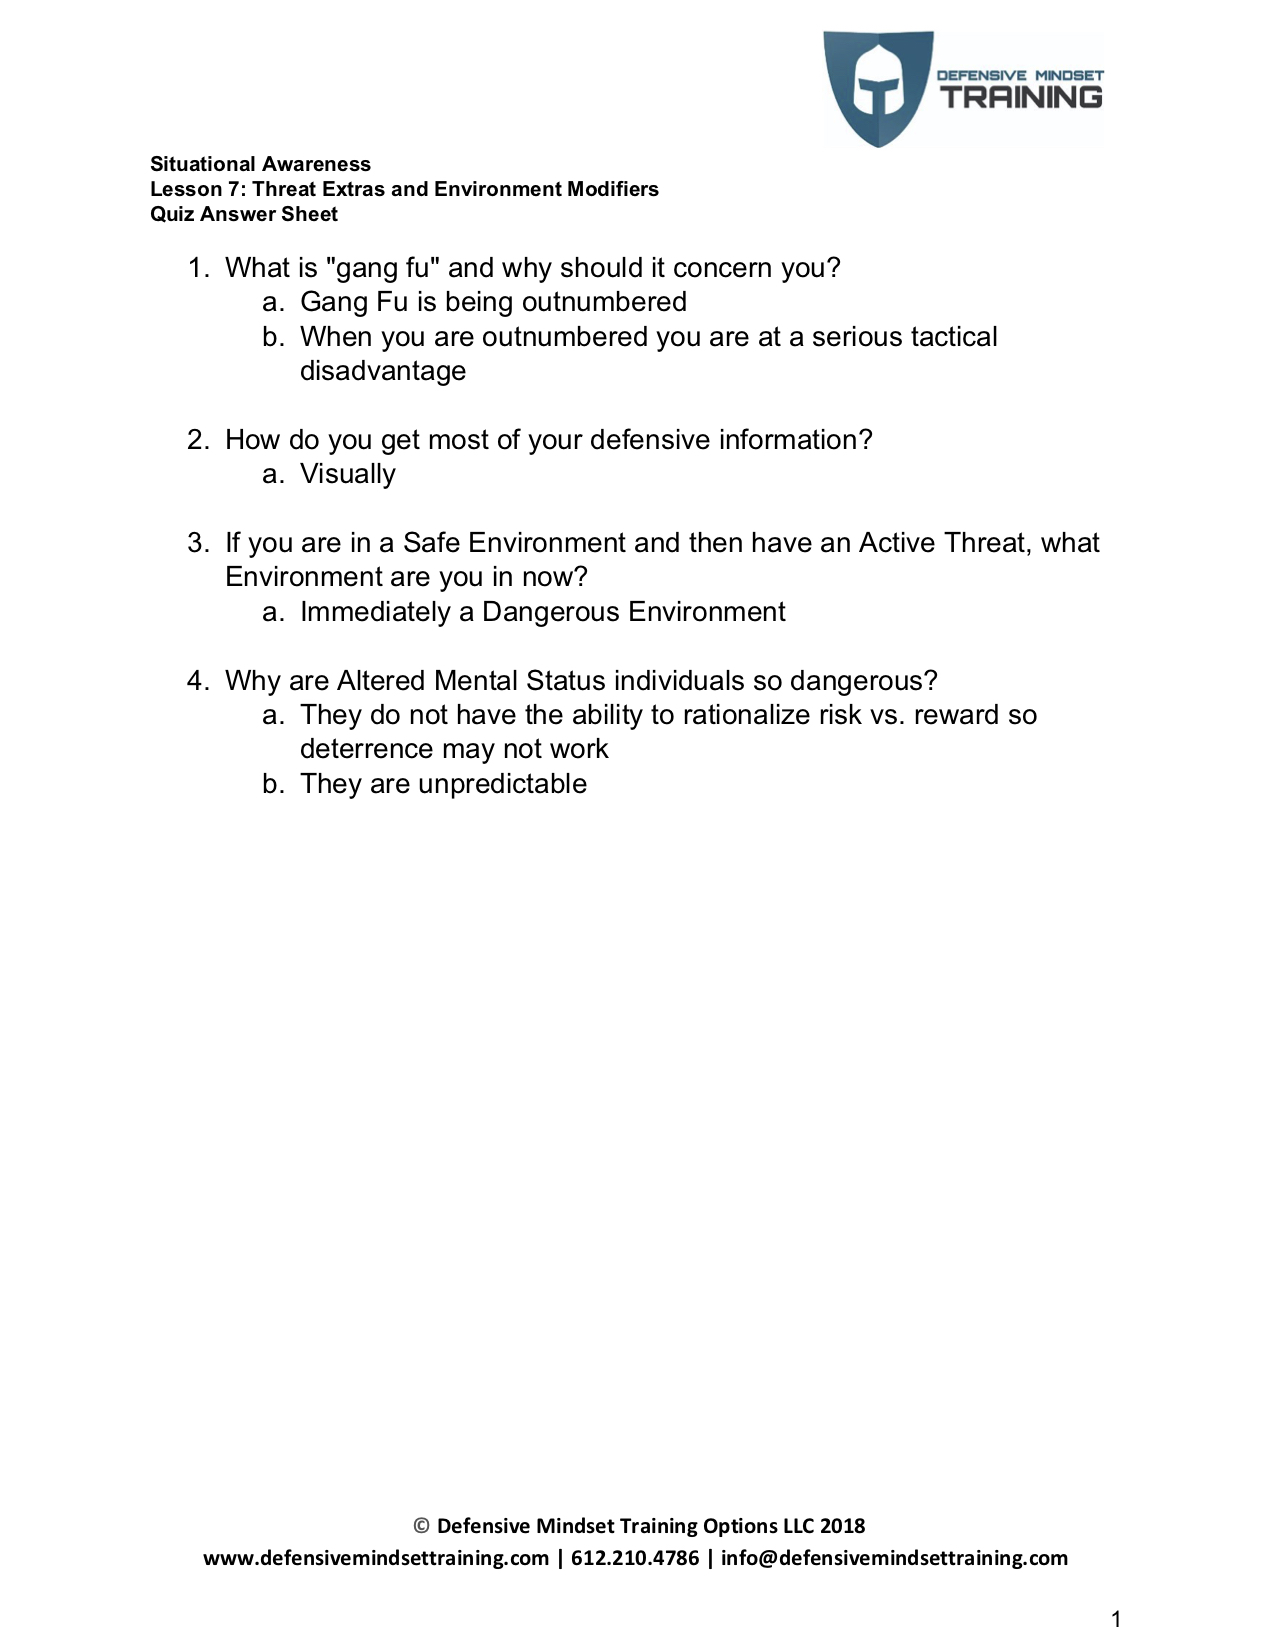 SA L7 - Threat Extras and Environment Modifiers - Quiz Answer Sheet.jpg